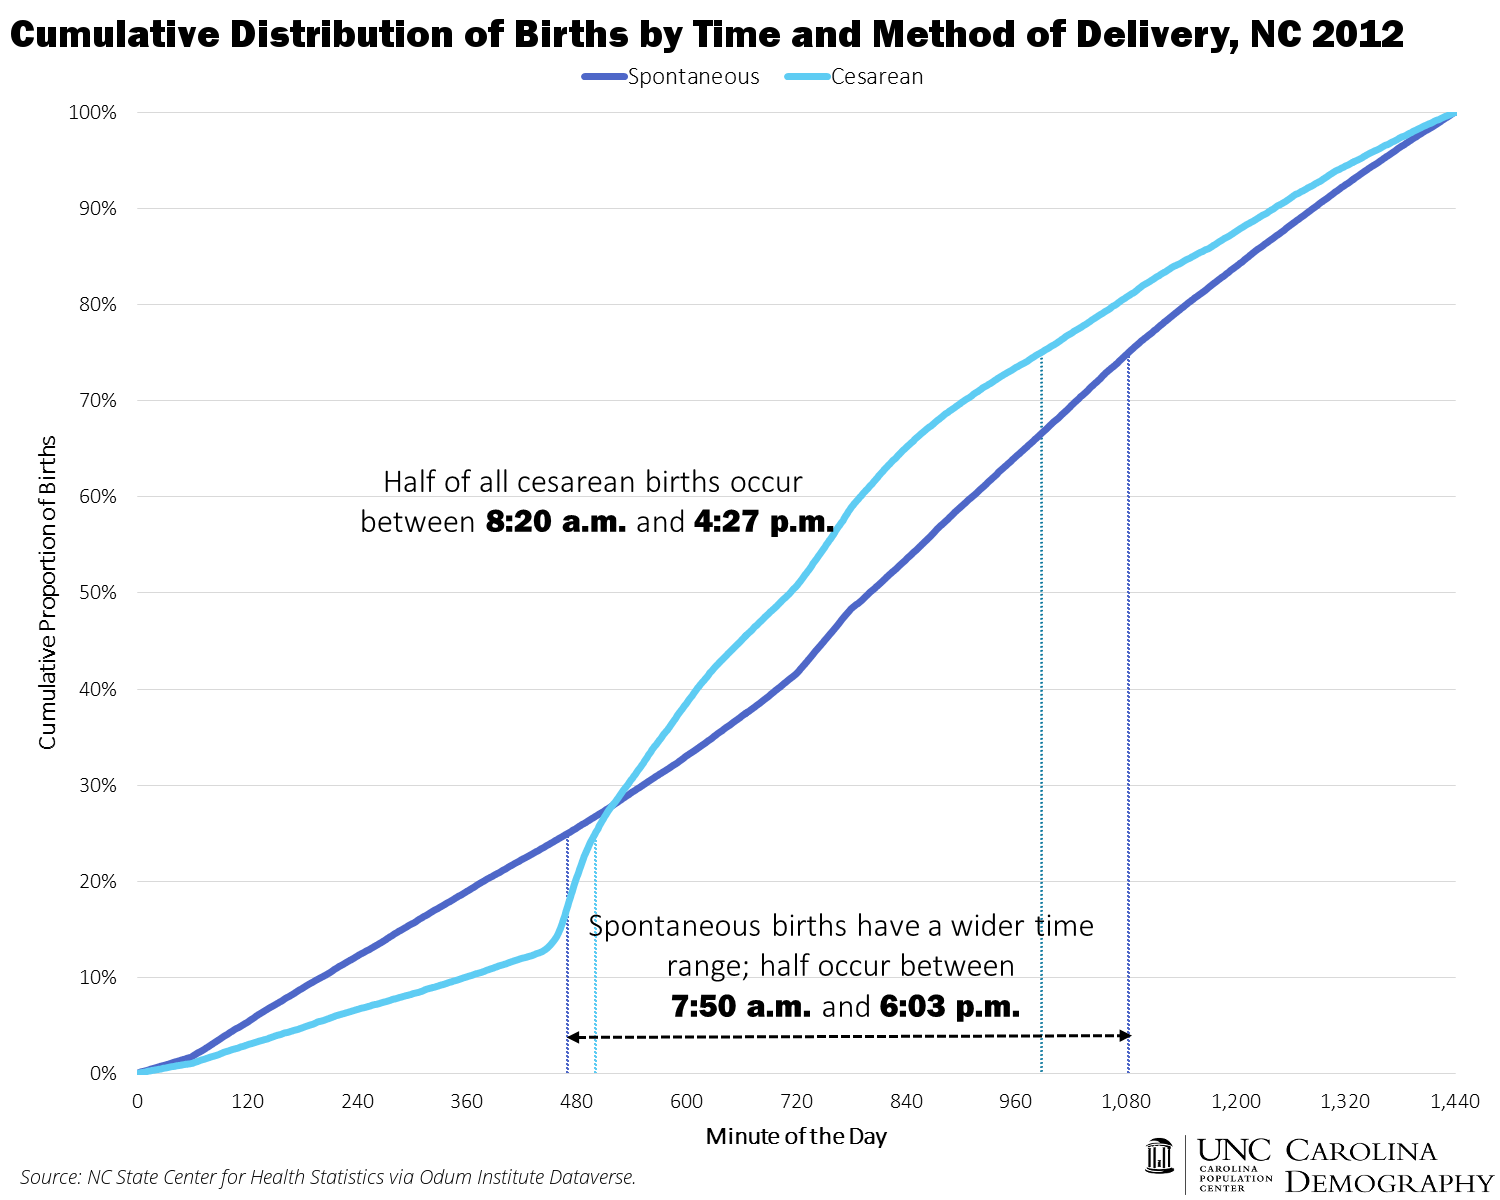 Cumulative Distribution of Births by Time and Method of Delivery NC 2012